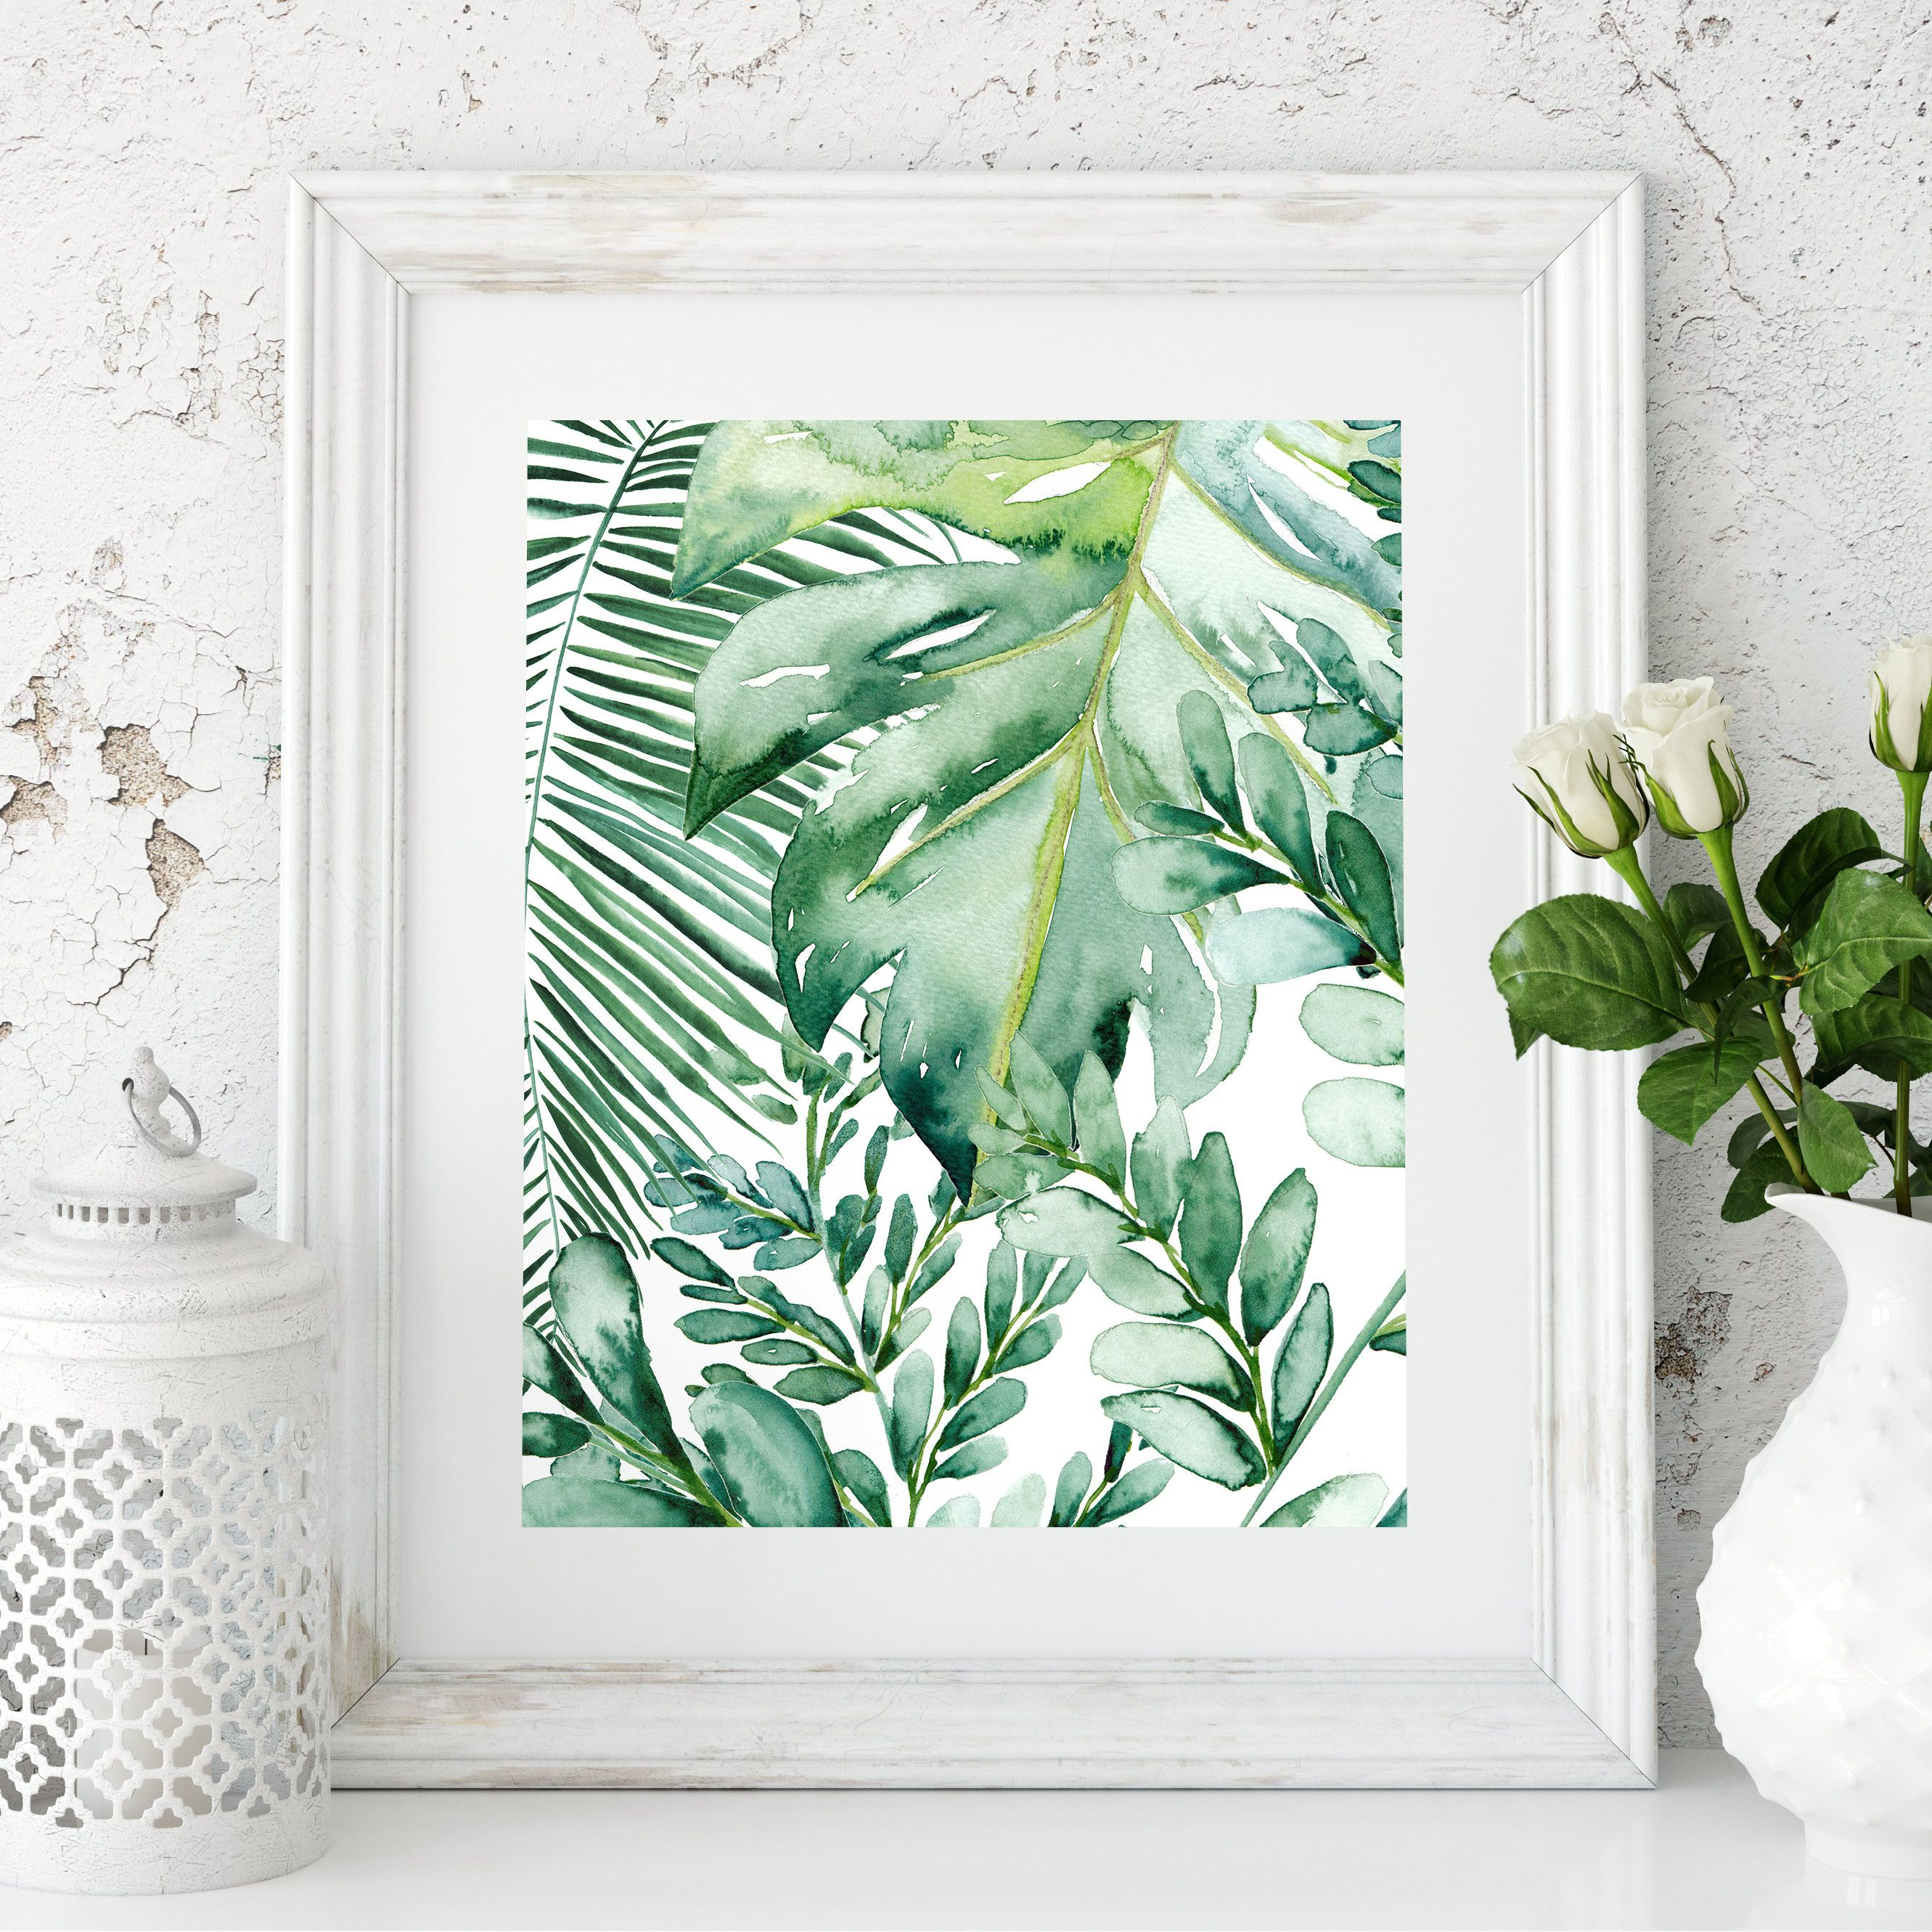 Banana Leaf Wall Art Banana Leaf Decor Palm Leaf Art Print Etsy Leaf Art Banana Leaf Decor Leaf Wall Art